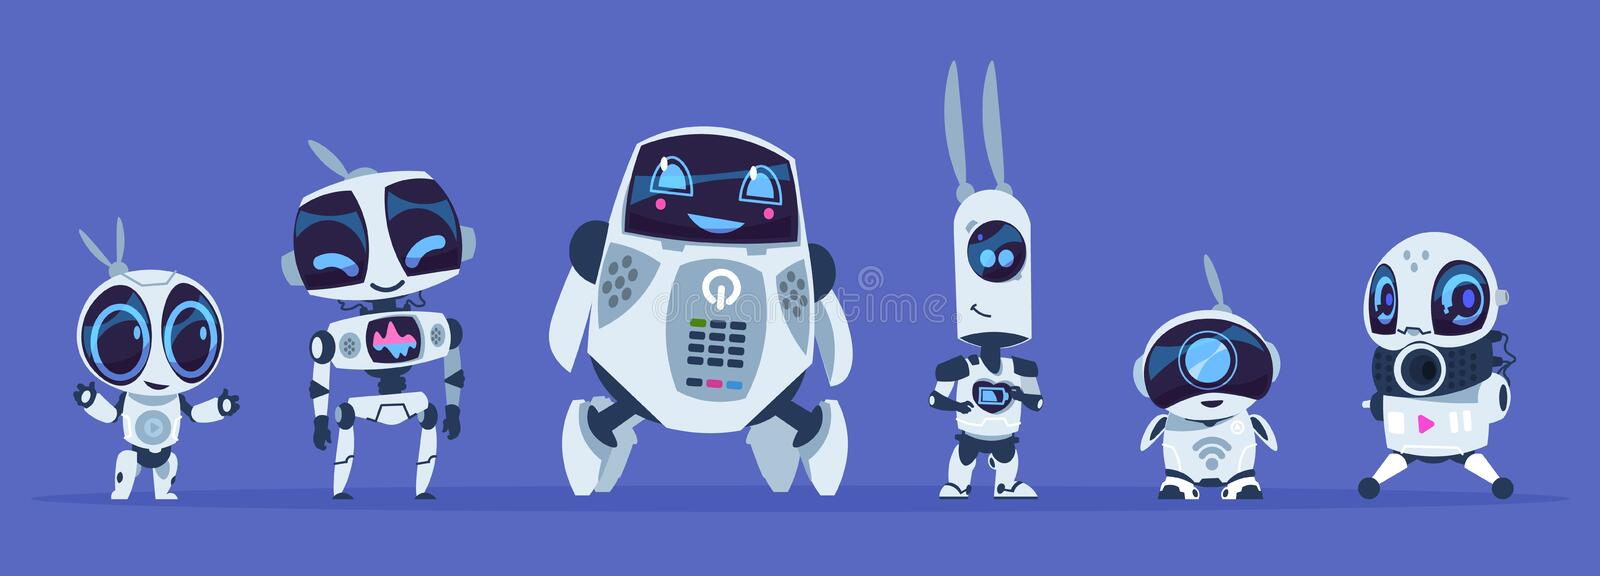 Robots evolution. Creative cartoon characters of futuristic robots, artificial intelligence education evolution concept vector illustration